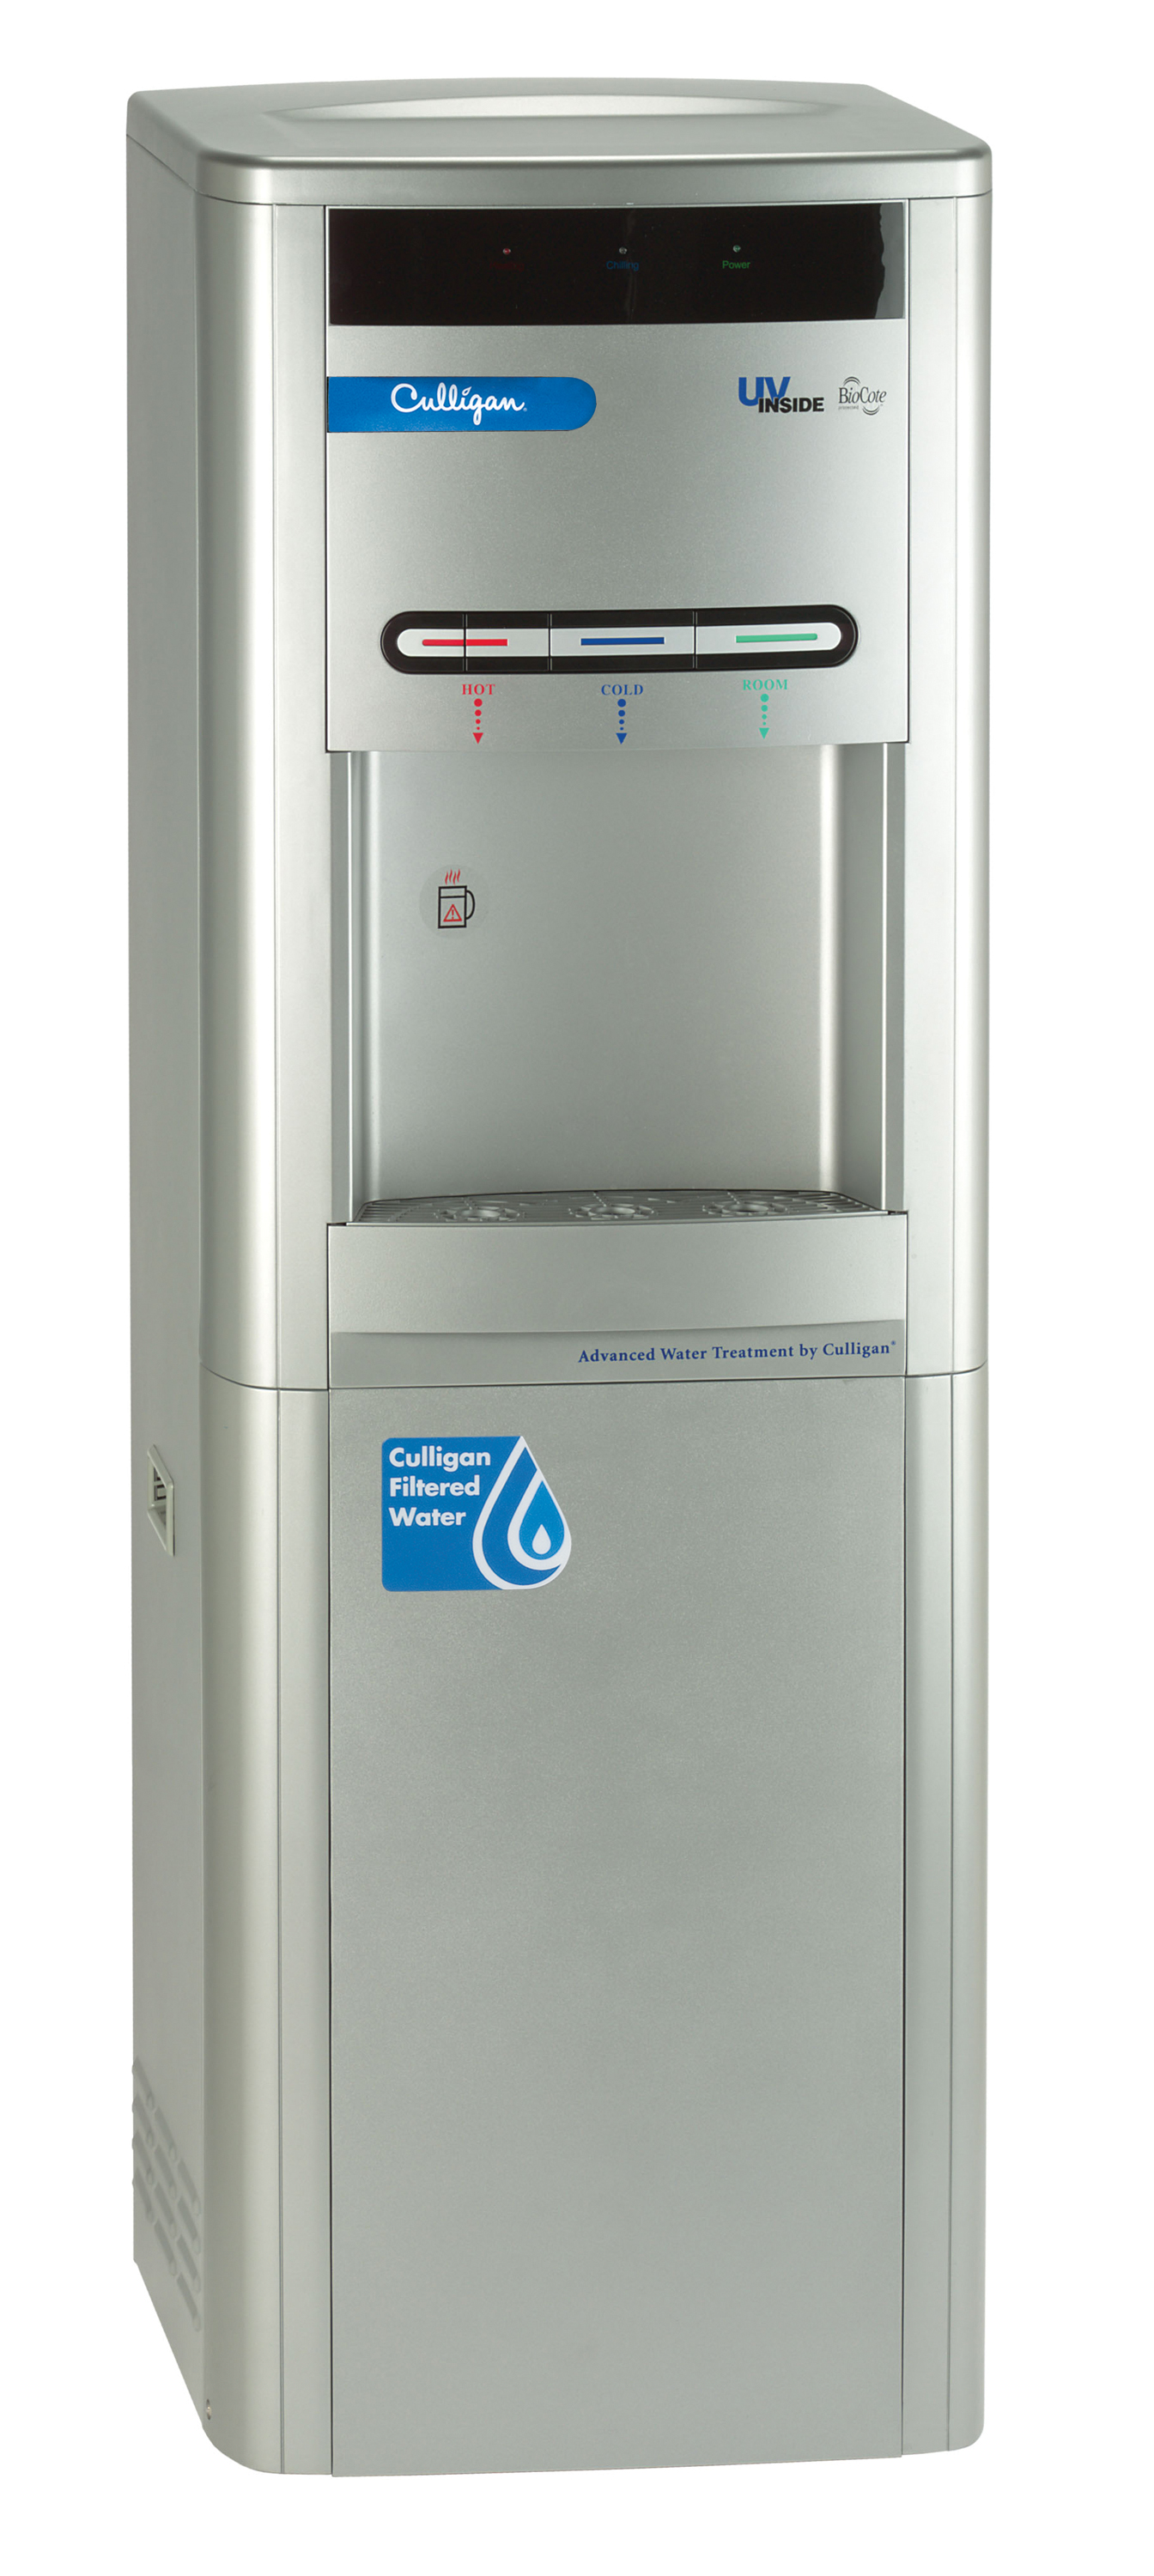 Bottle Free Coolers Amp Dispensers Save On Water Delivery